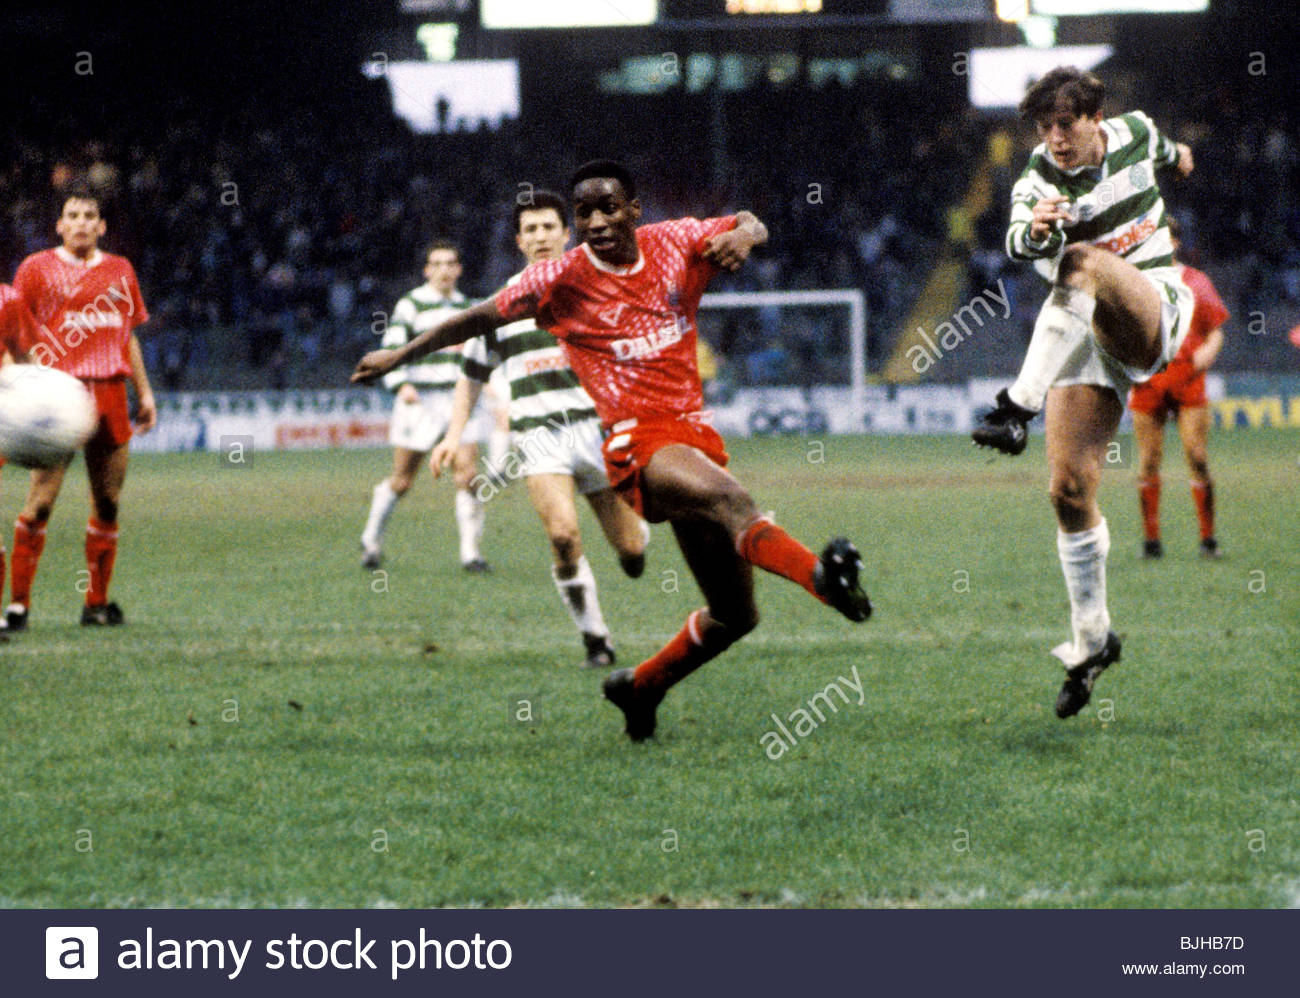 08/02/92 CELTIC V AIRDRIE (2-0) CELTIC PARK - GLASGOW Celtic's Gerry Creaney (right) fires in his second goal - Stock Image